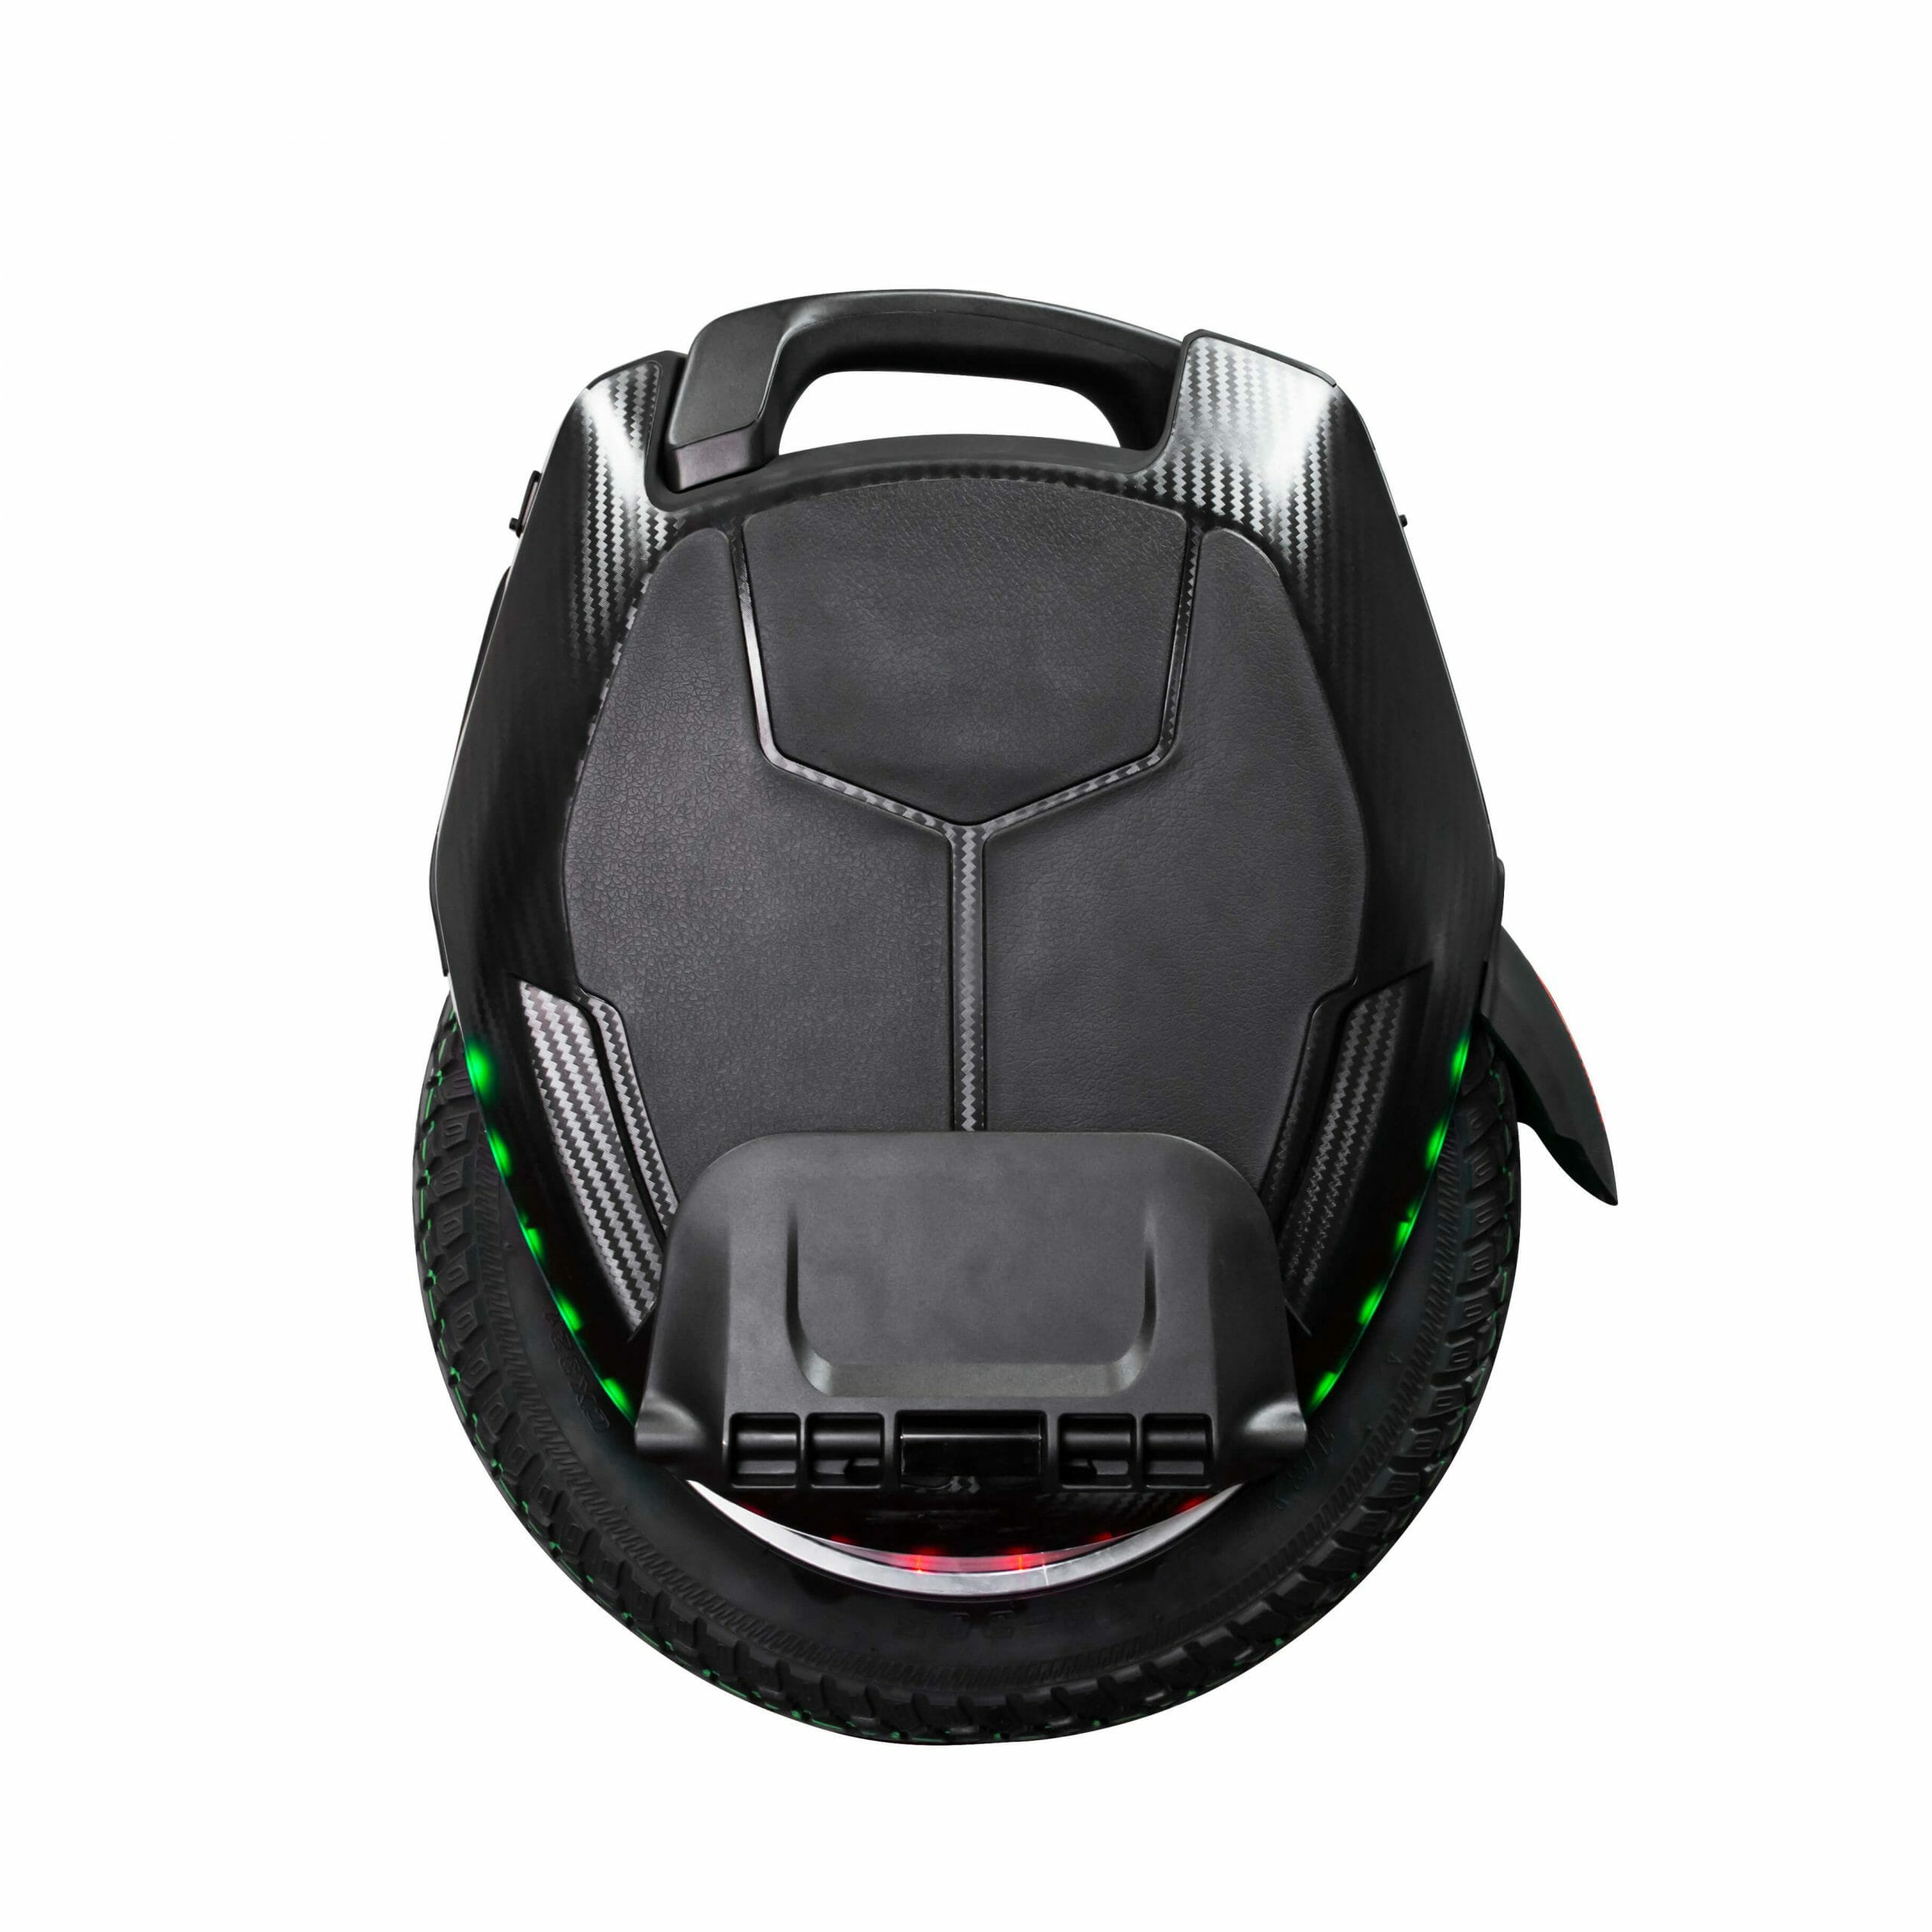 Kingsong KS-16X Electric Unicycle Side View